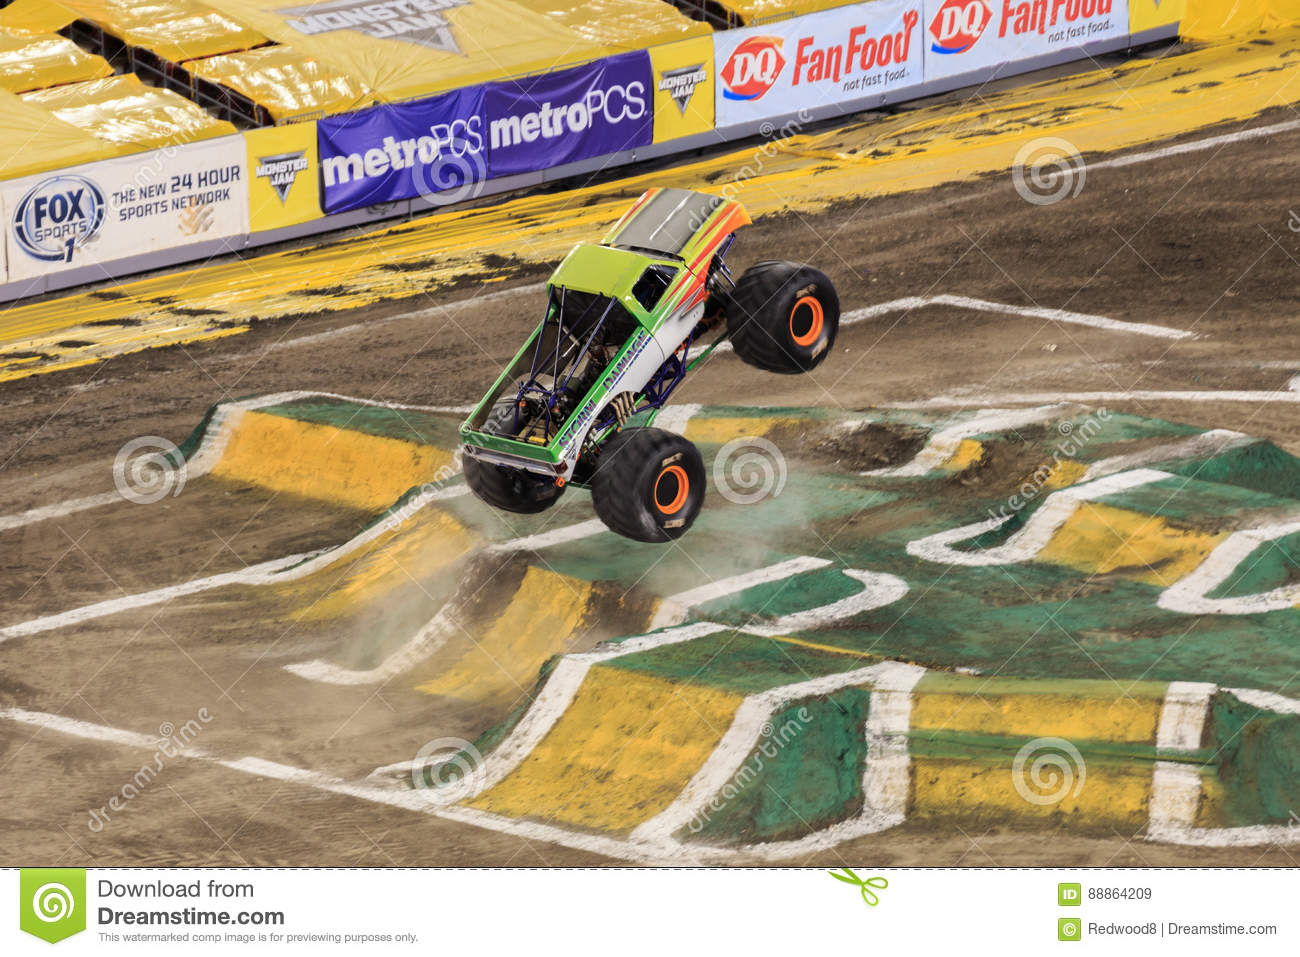 2 190 Monster Truck Photos Free Royalty Free Stock Photos From Dreamstime